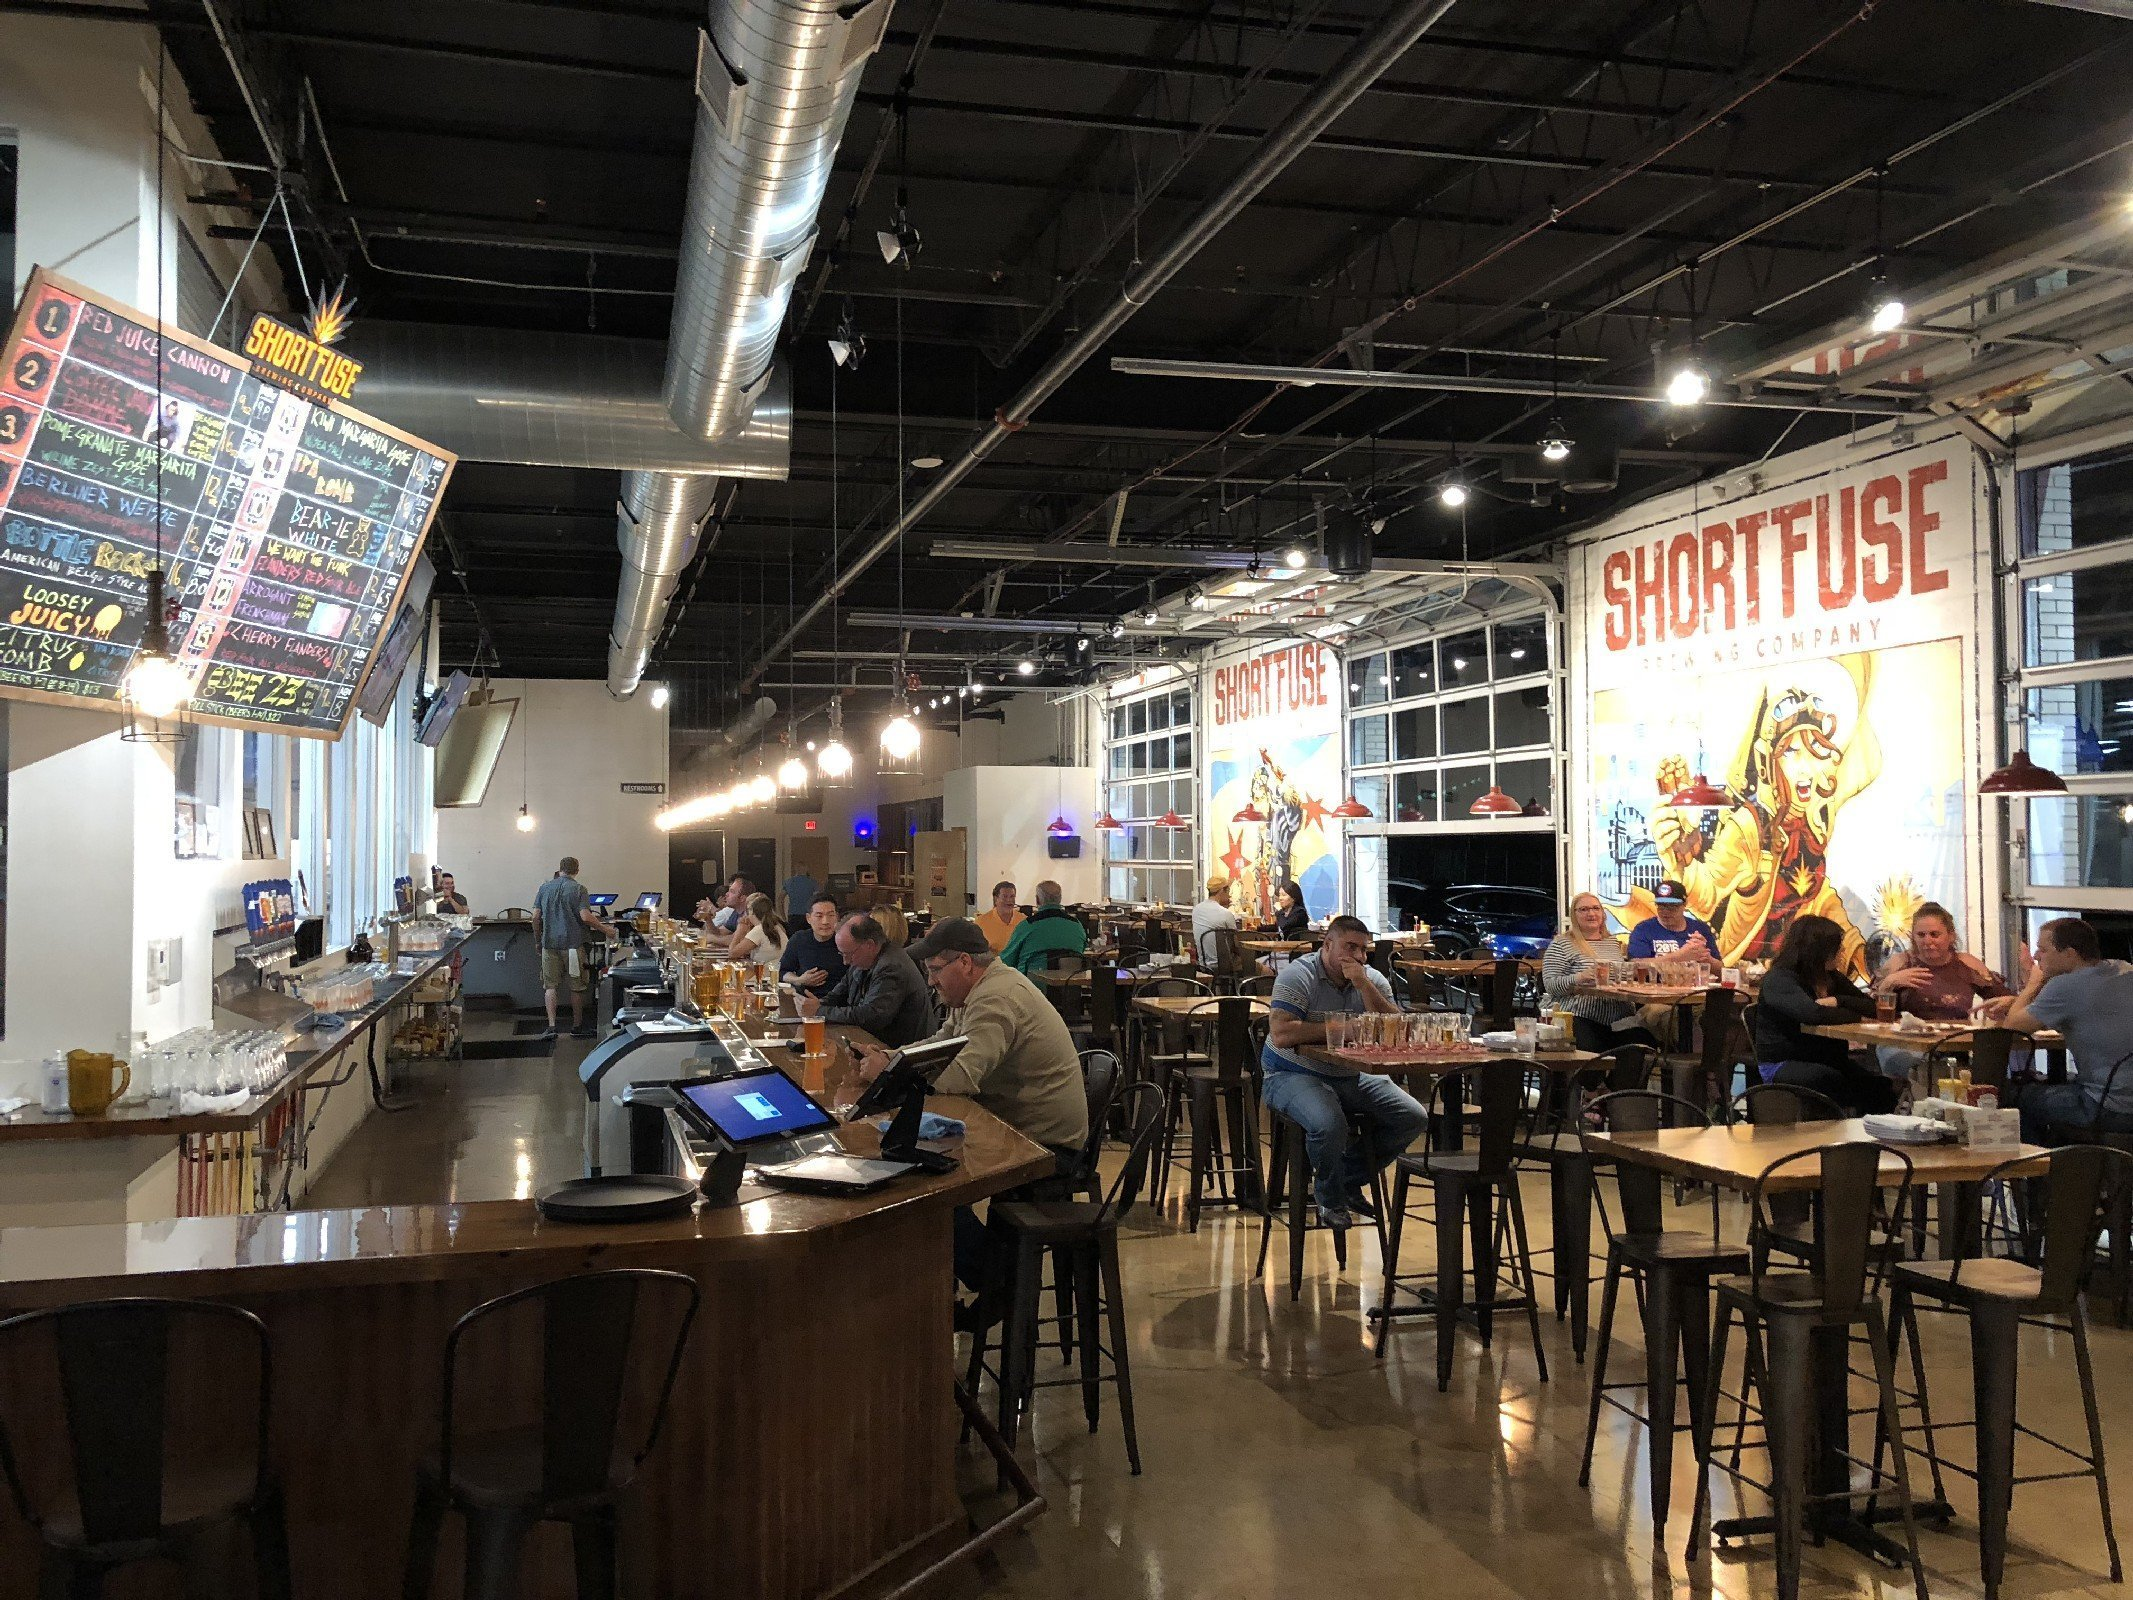 Short Fuse Brewing Co. in Schiller Park, IL by Jets Like Taxis / Hopsmash